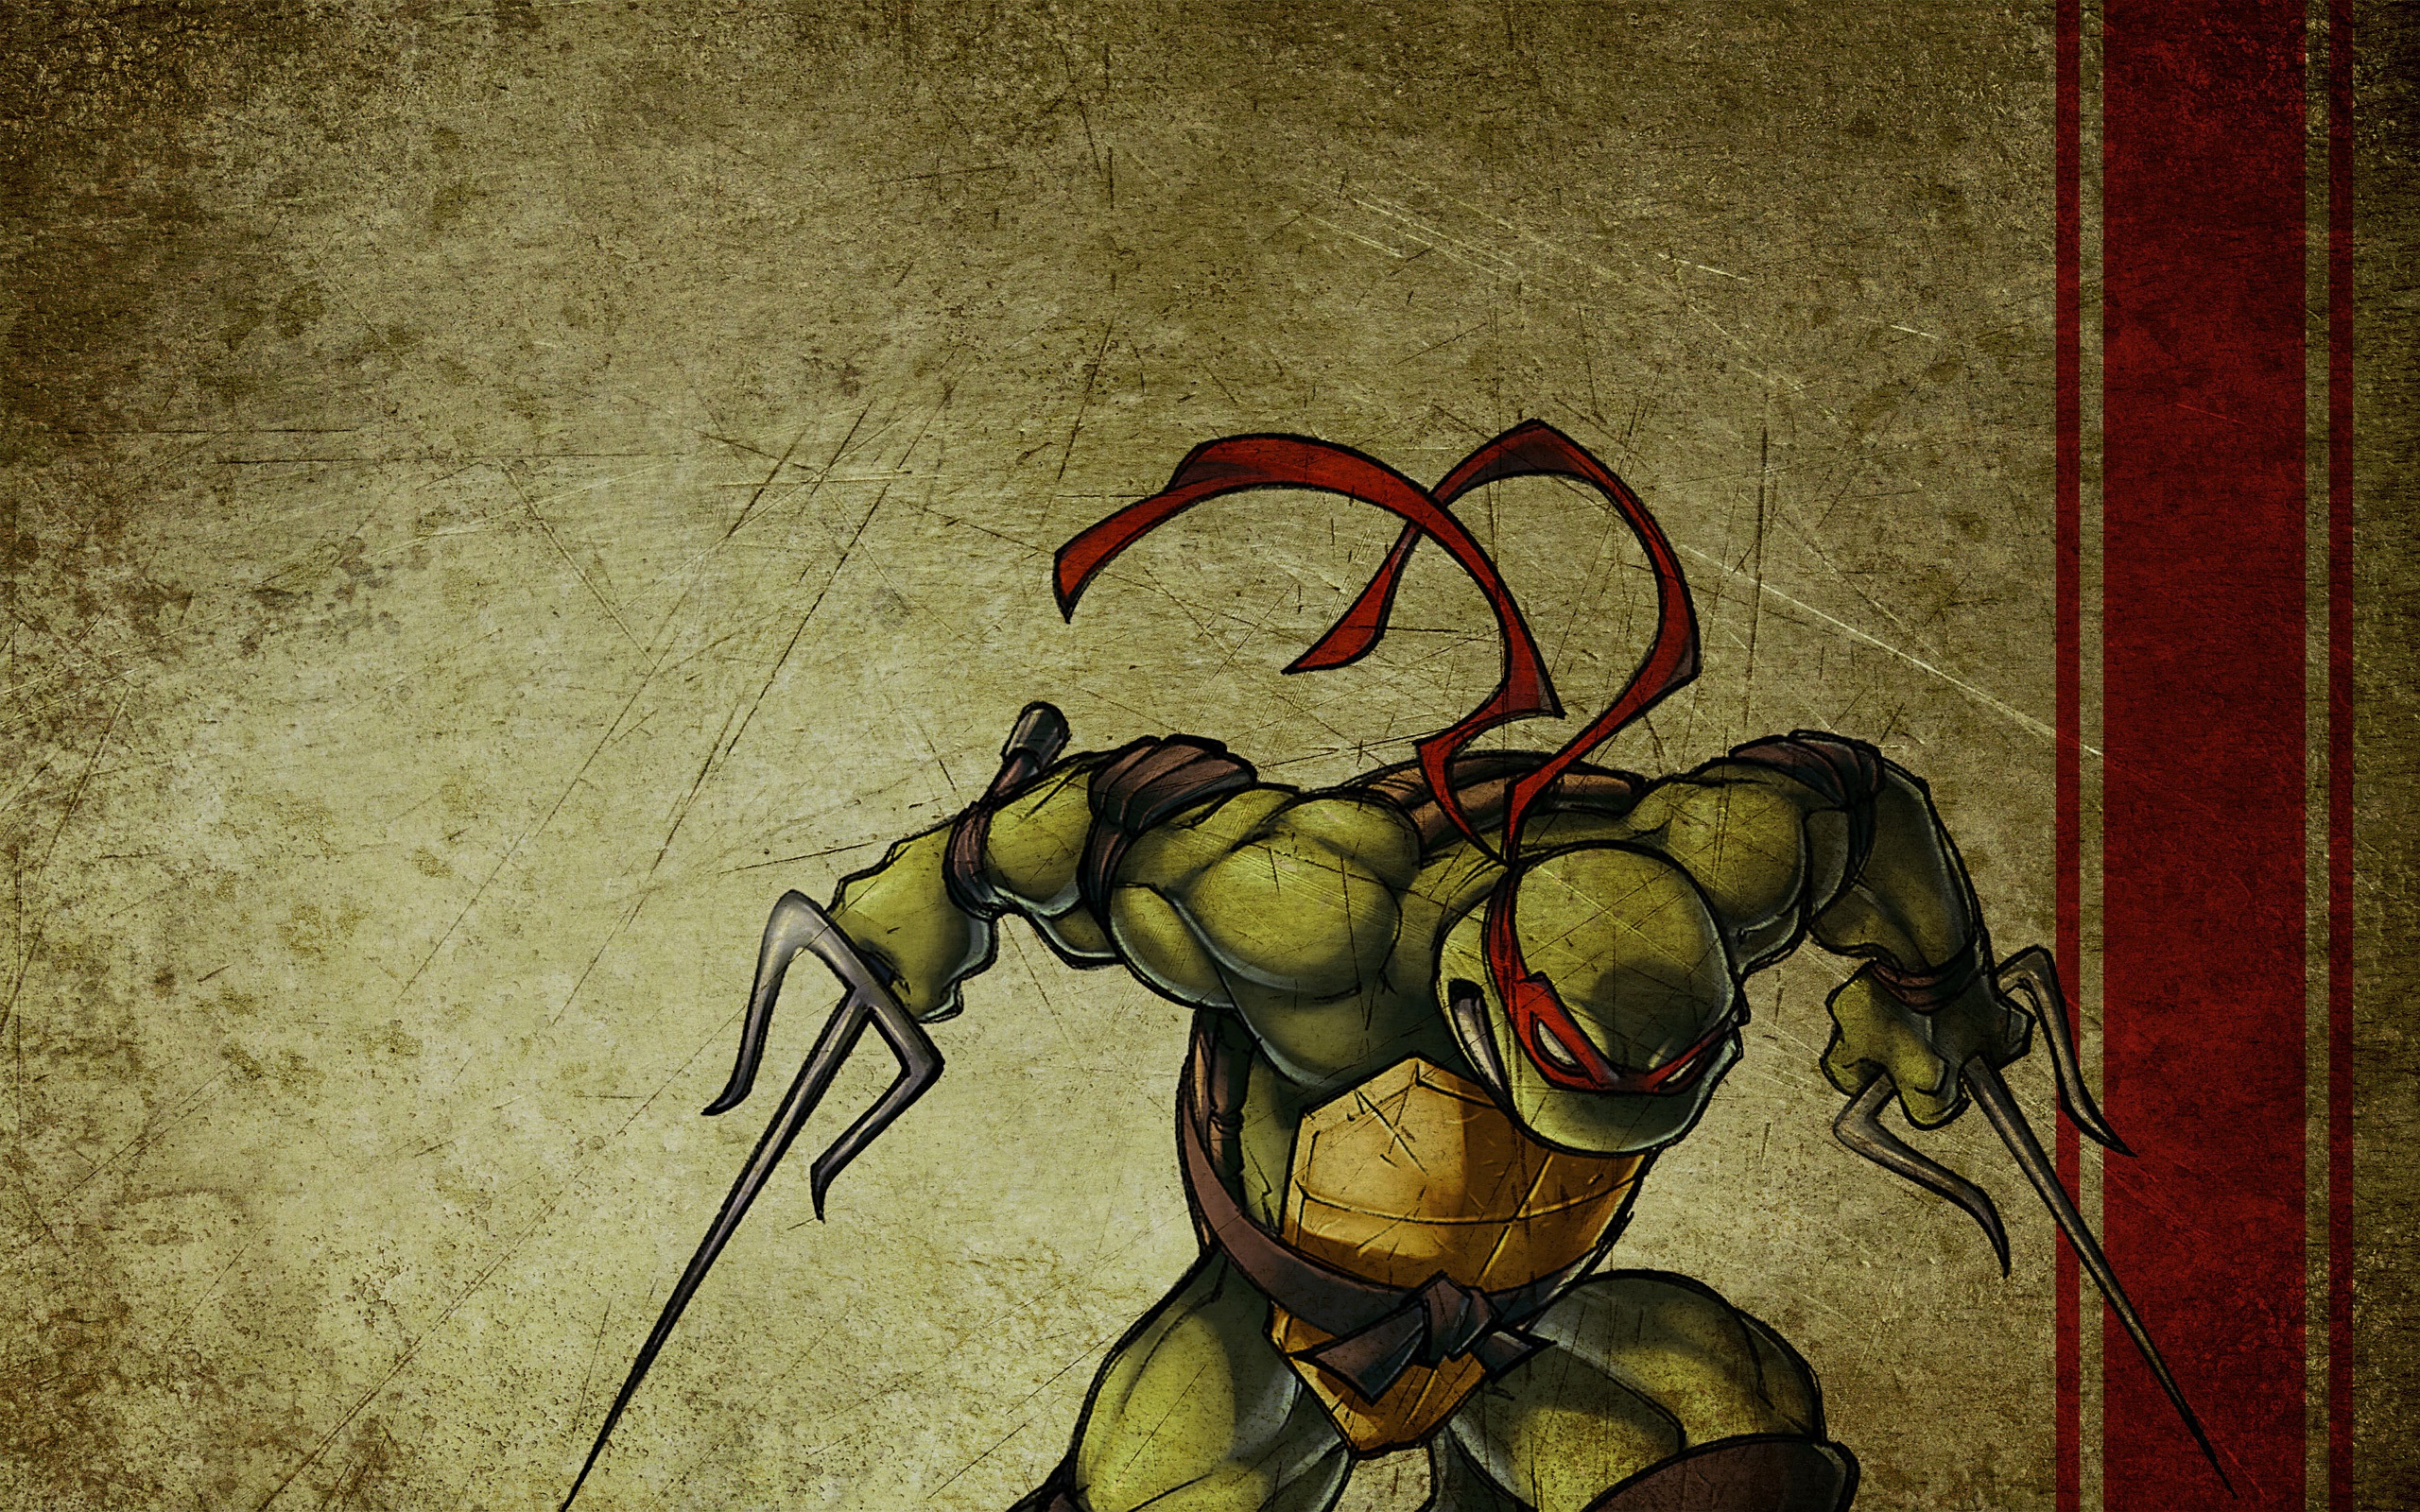 TMNT wallpaper miscellaneous 18 (2560х1600)